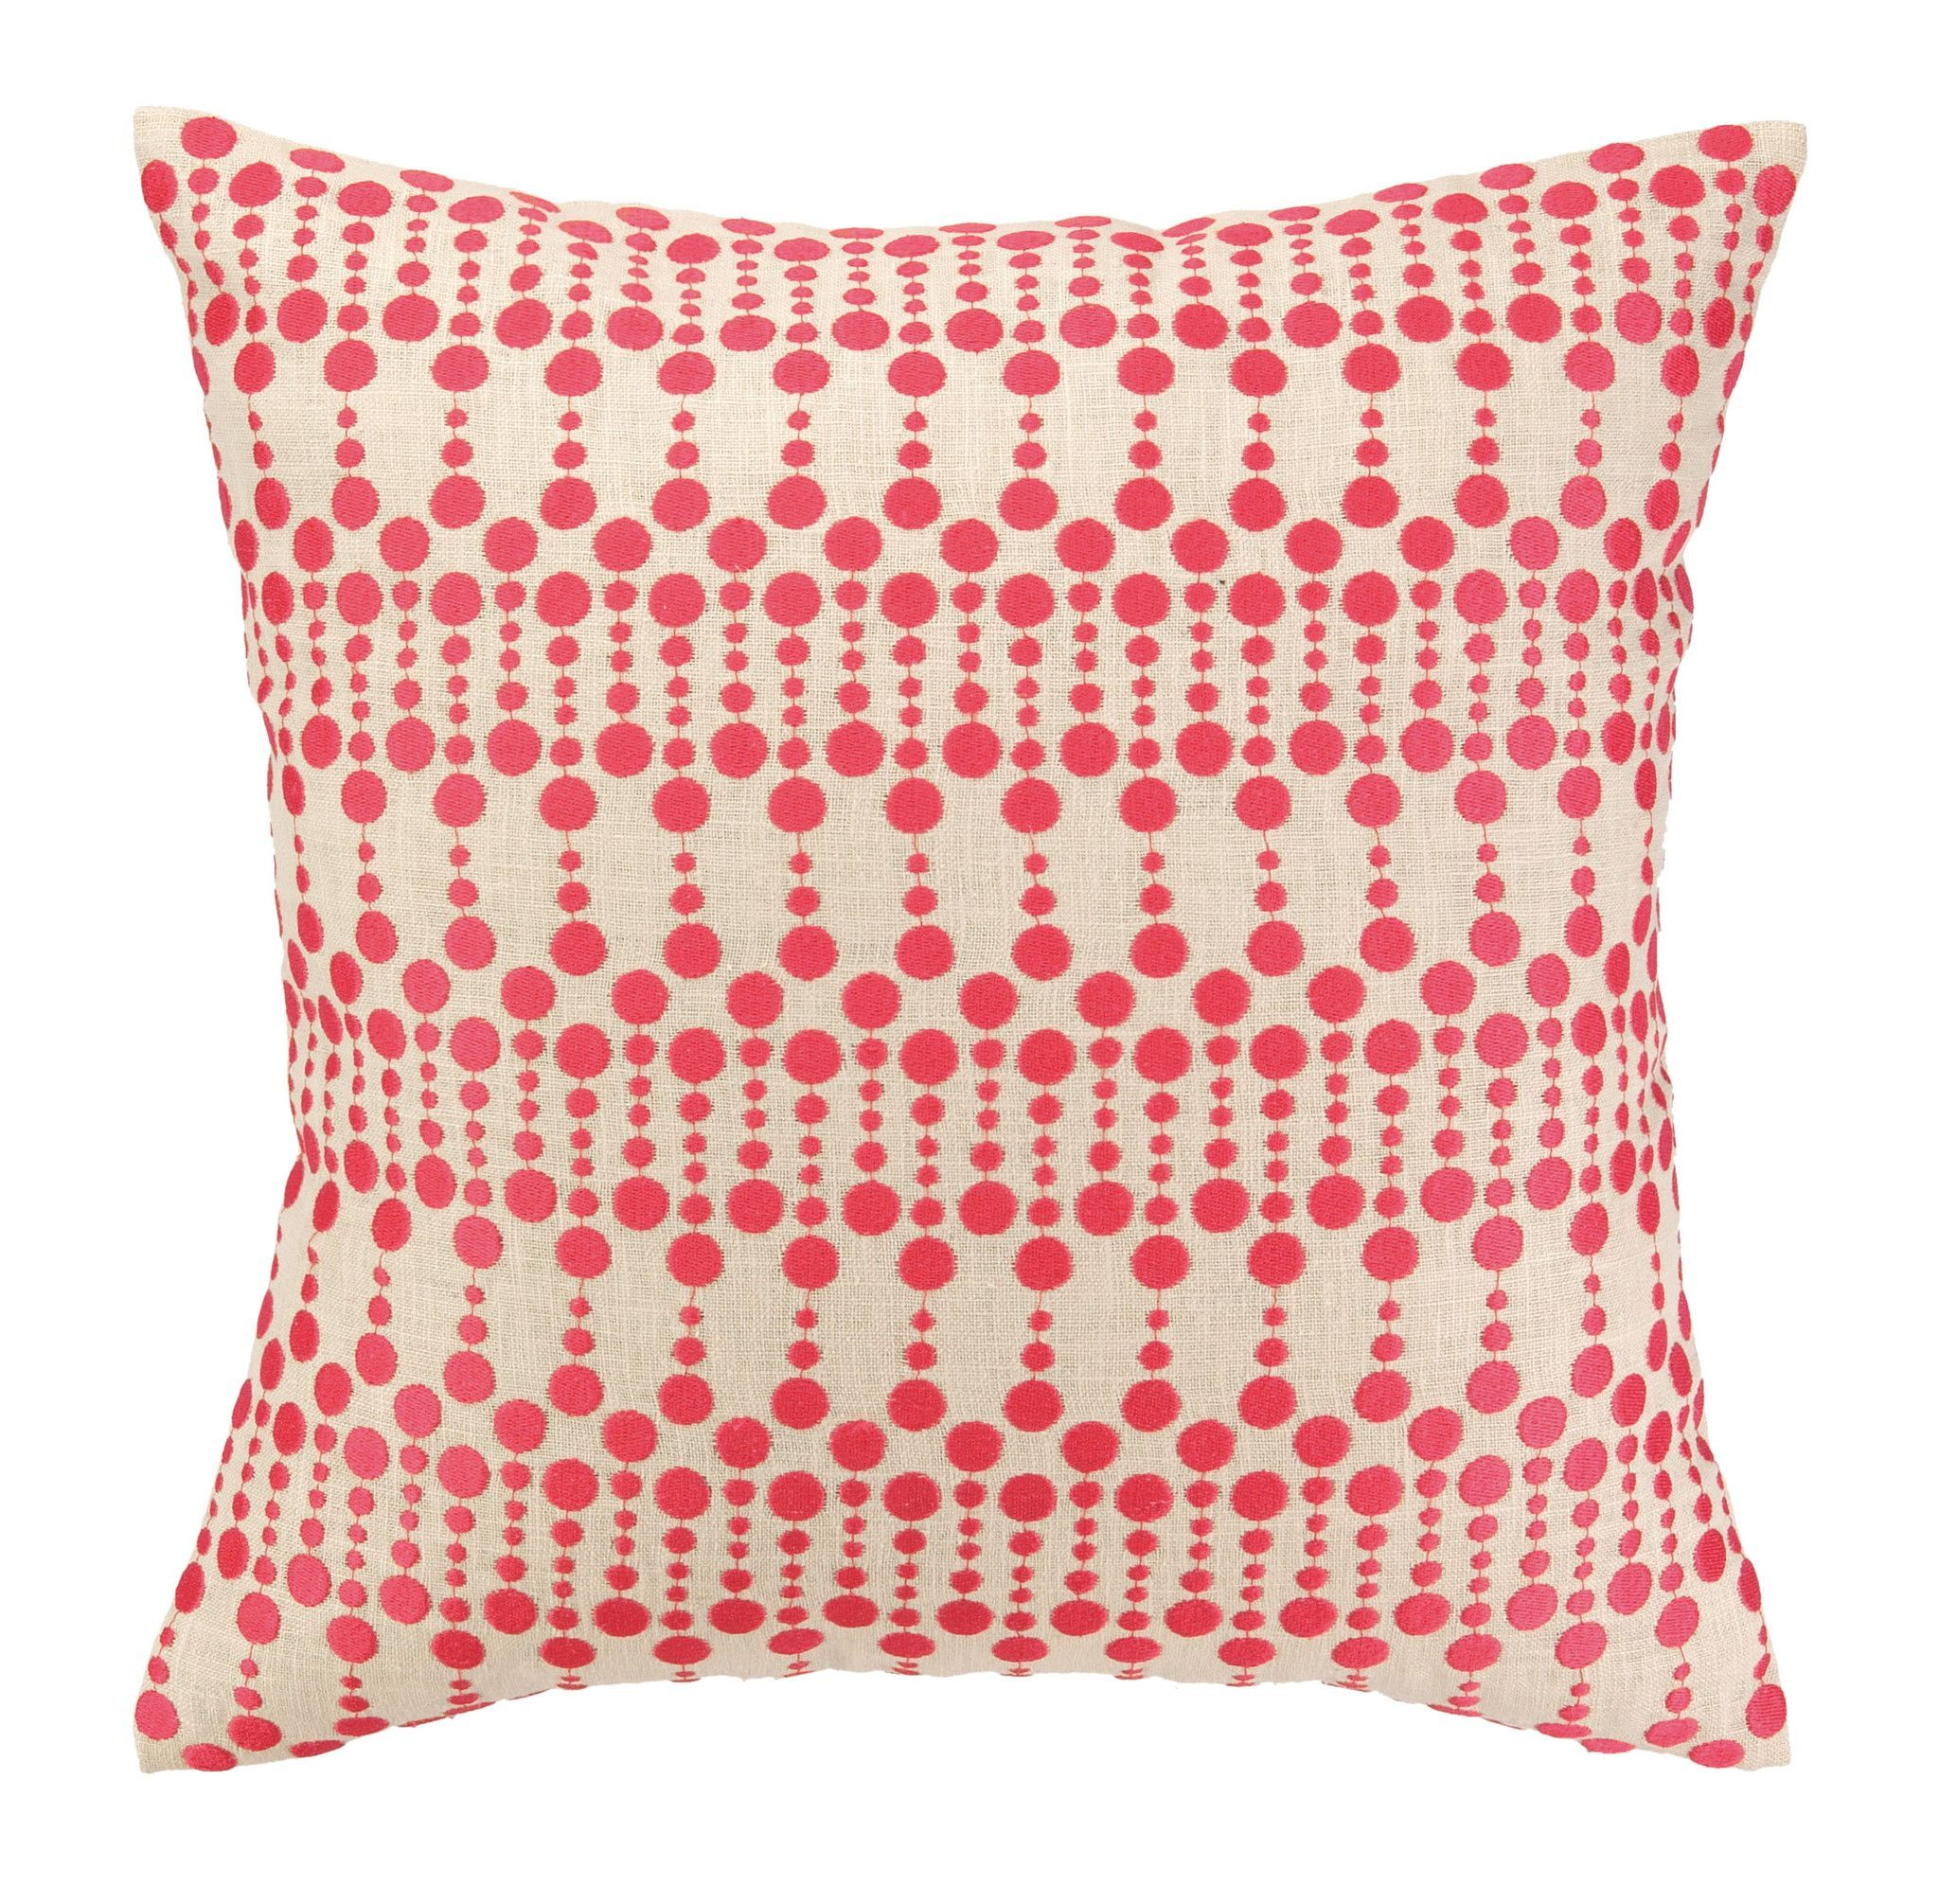 Dottie Delight Pink Pillow